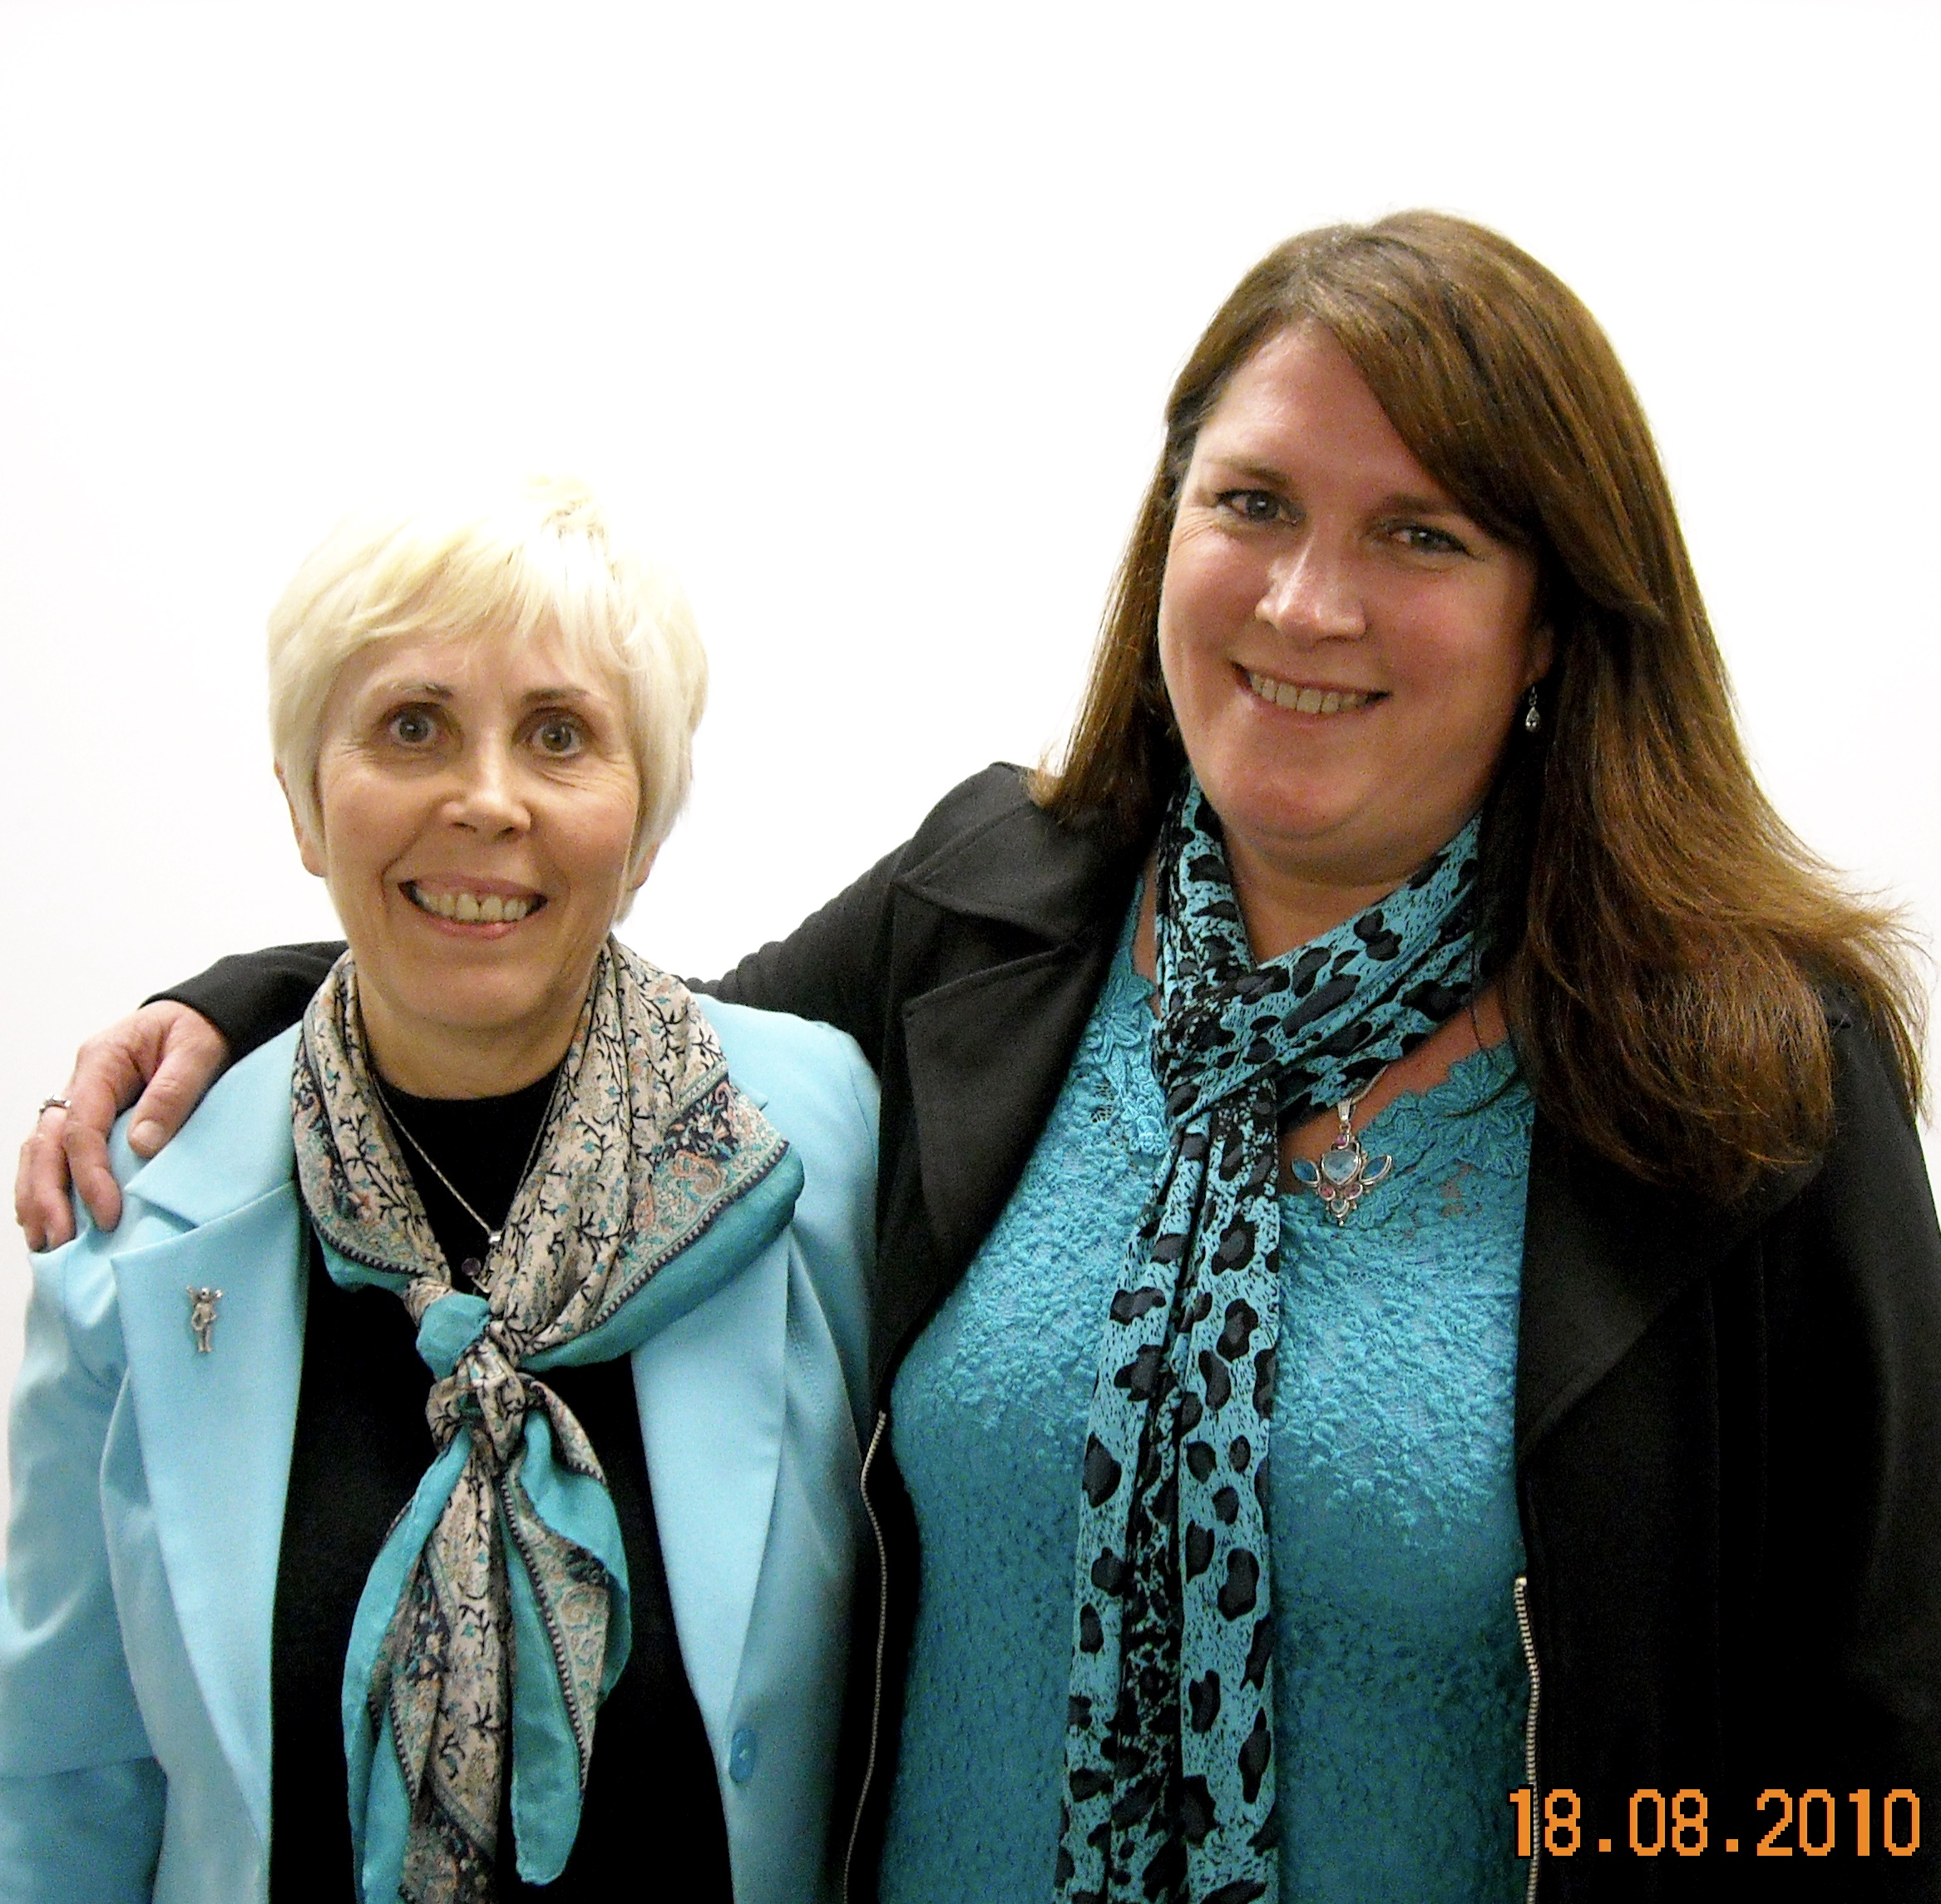 Mary Rowell and Debbie Malone